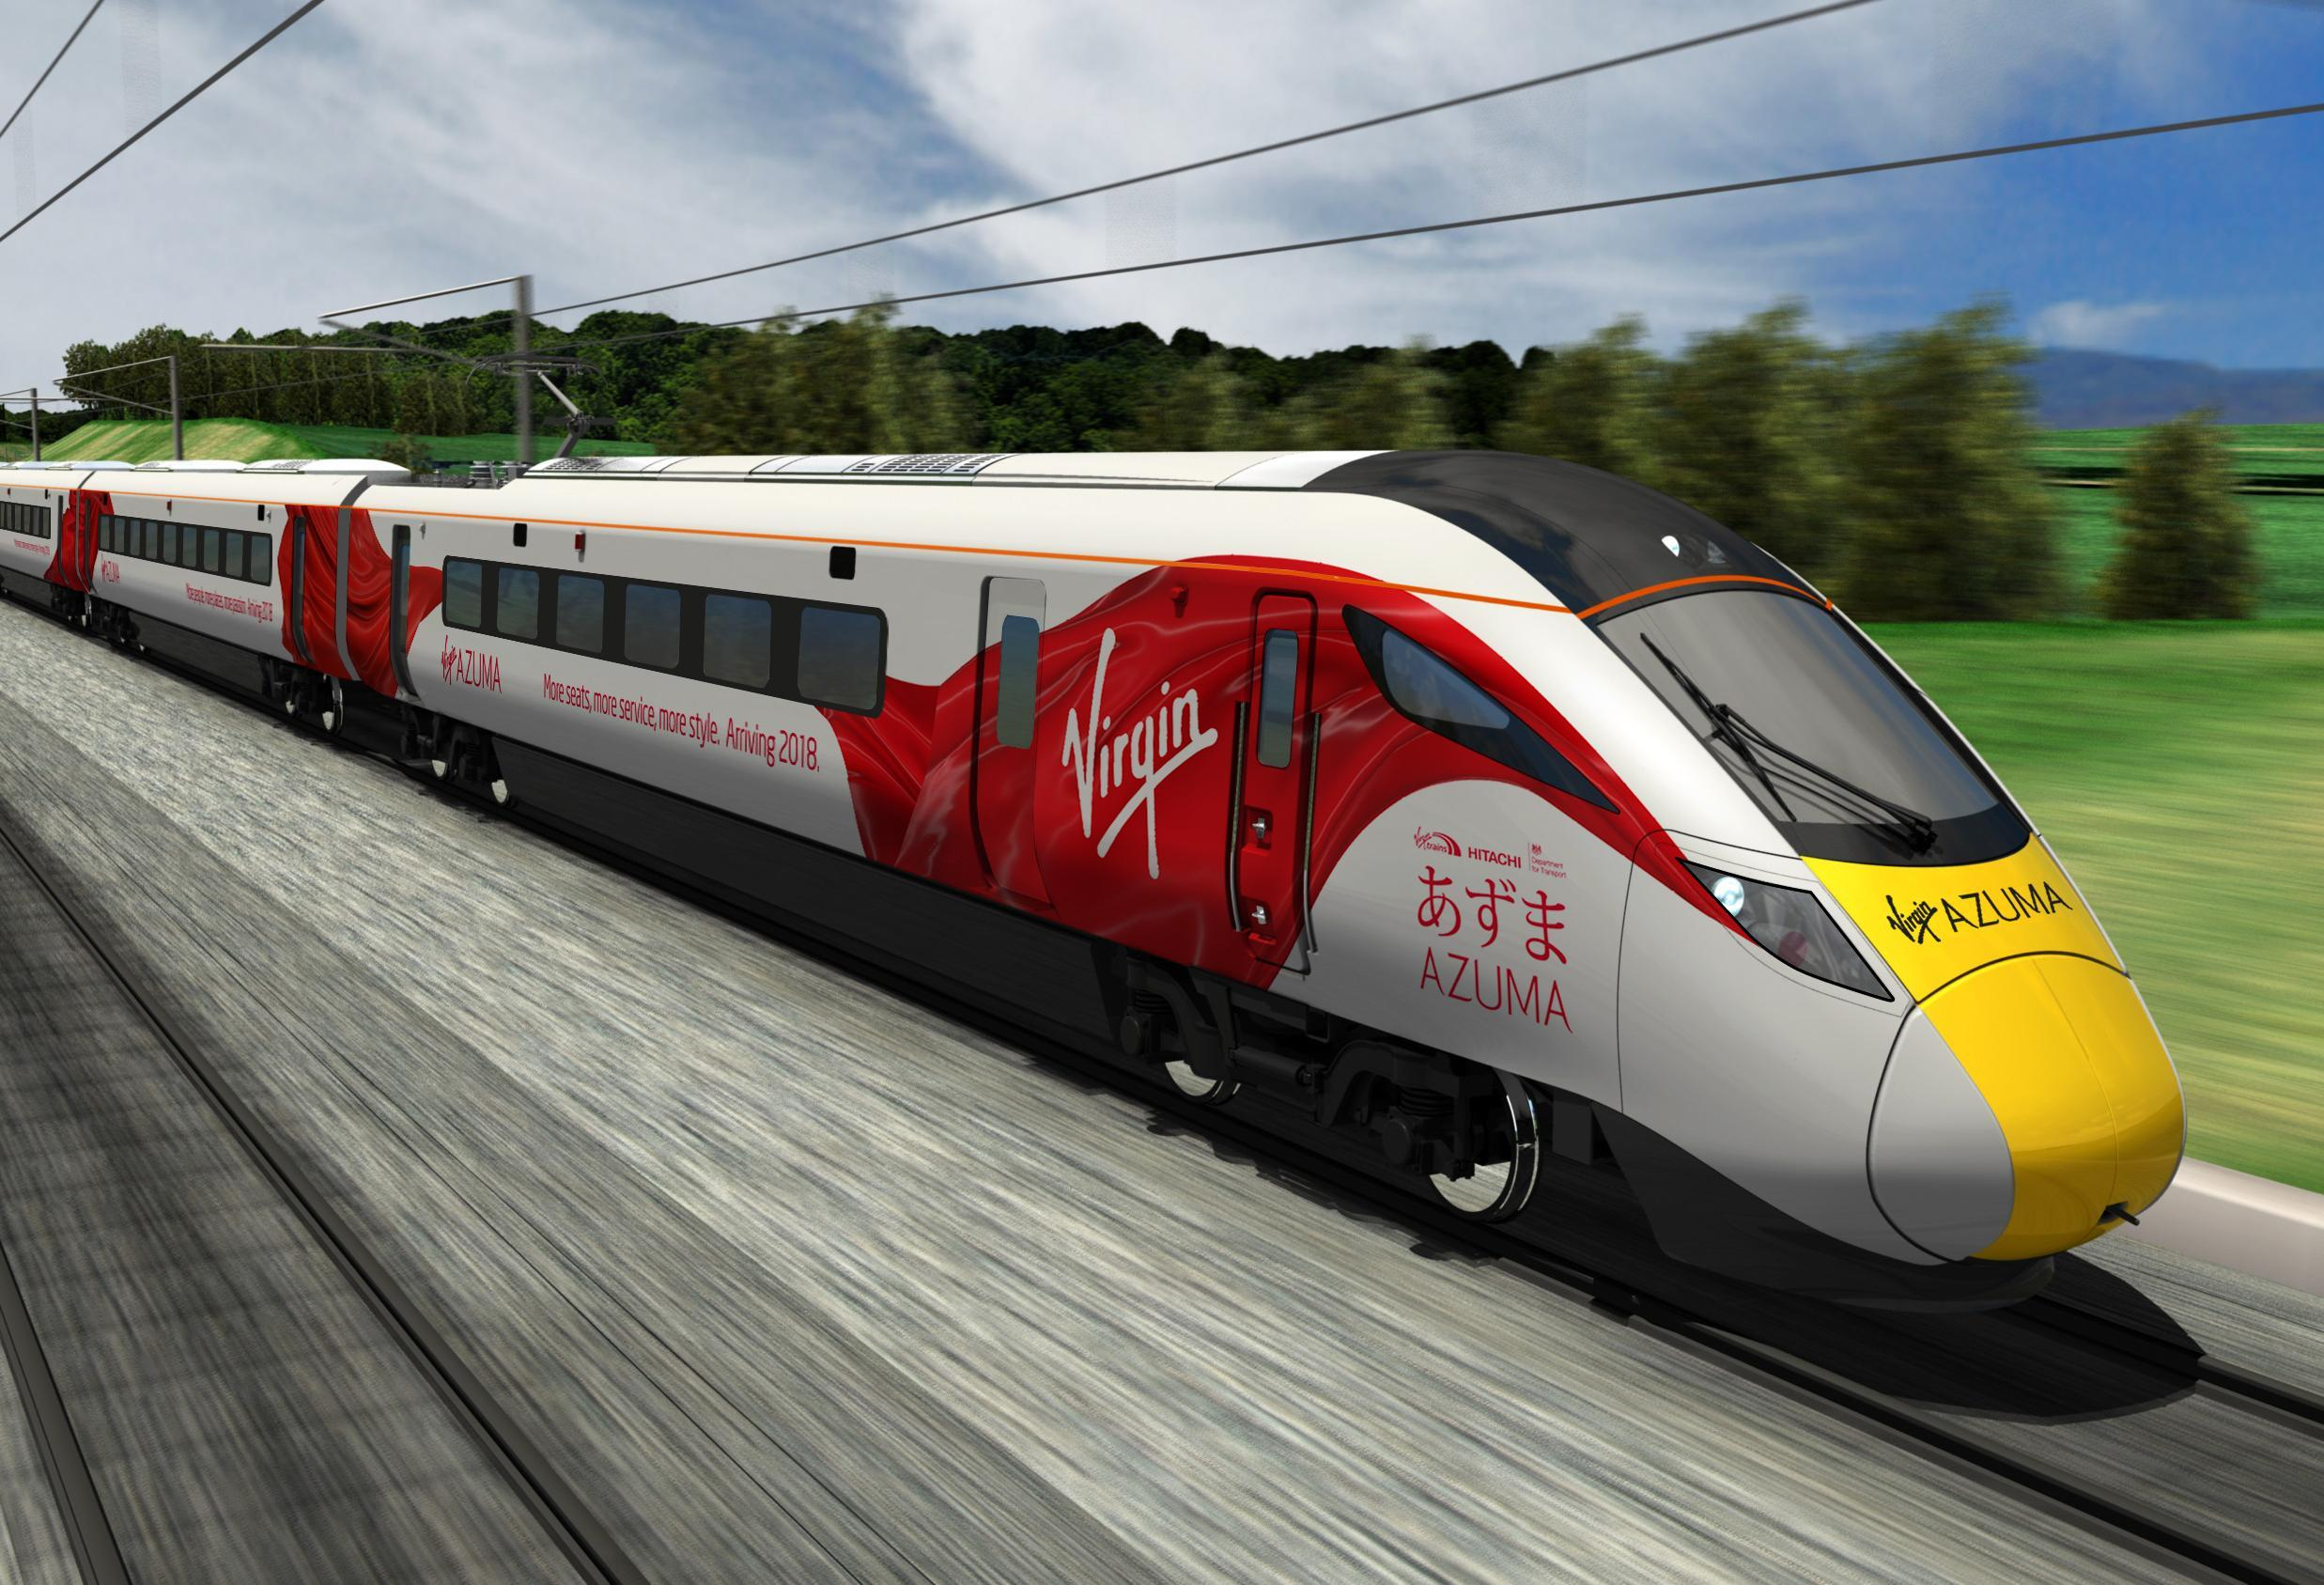 Rats spotted on Virgin East Coast trains, according to union